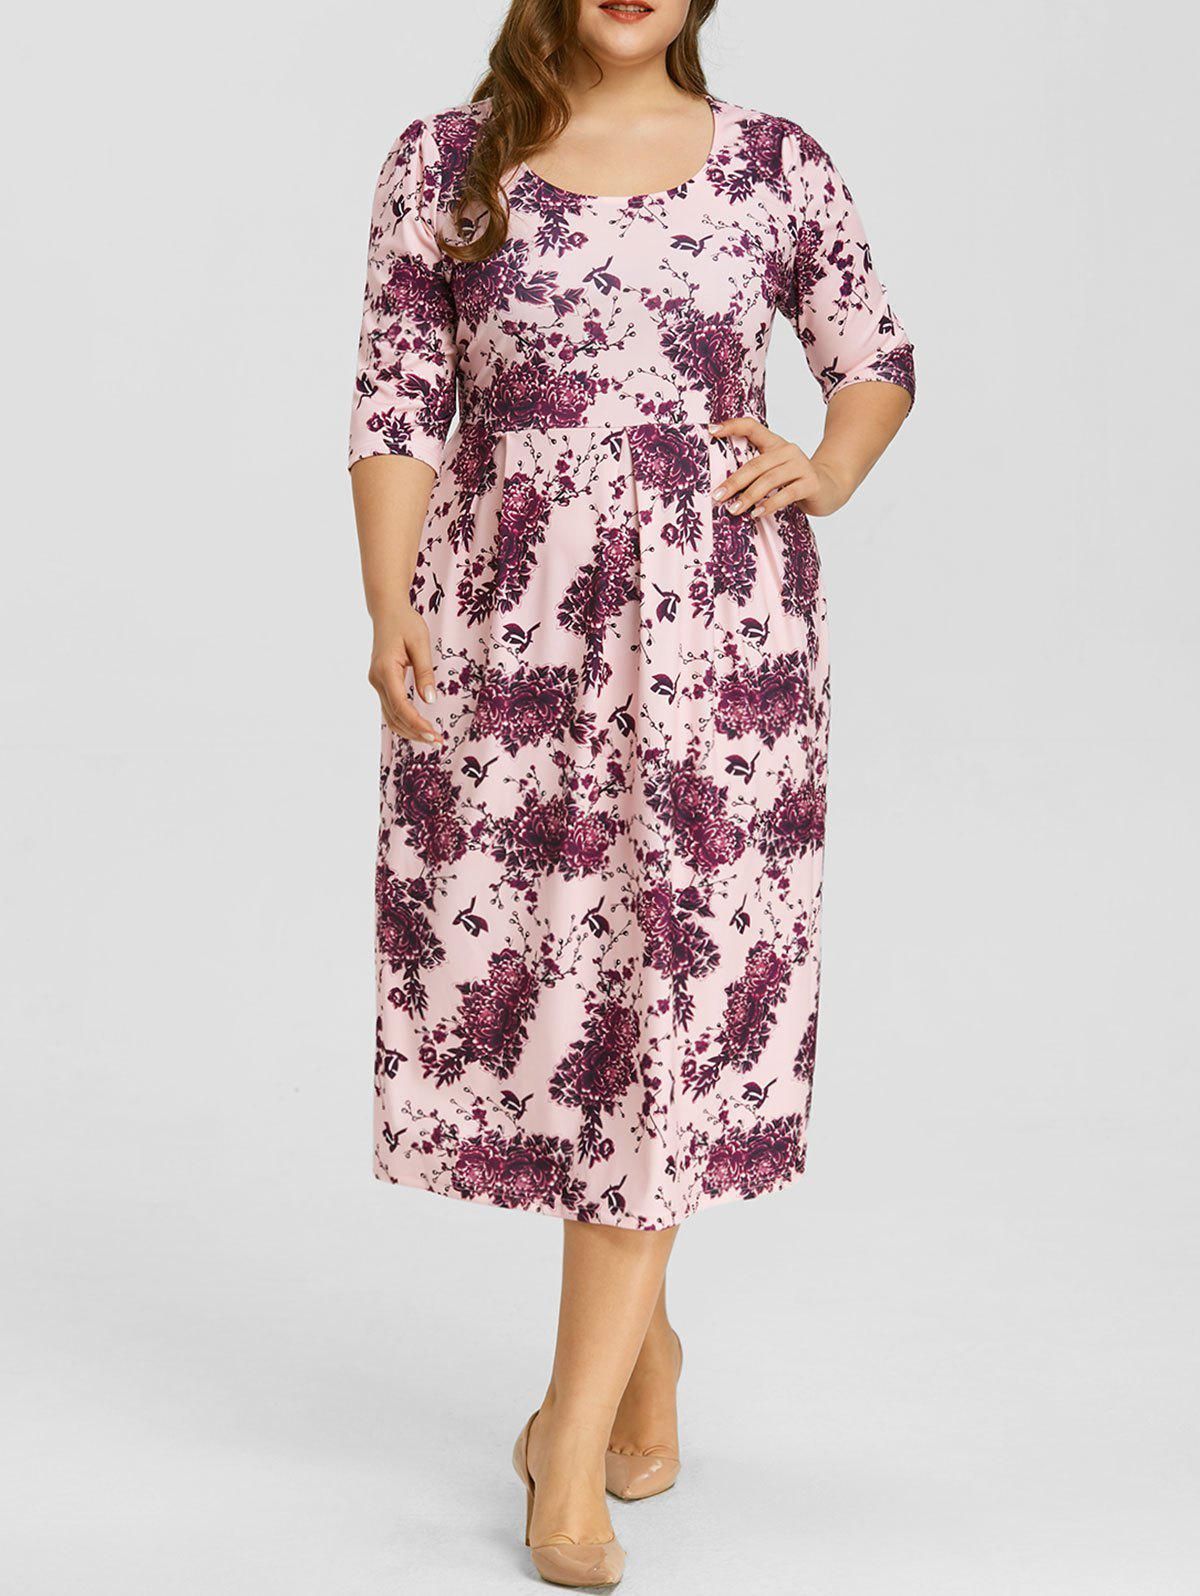 Fancy Floral Print Plus Size Midi Dress